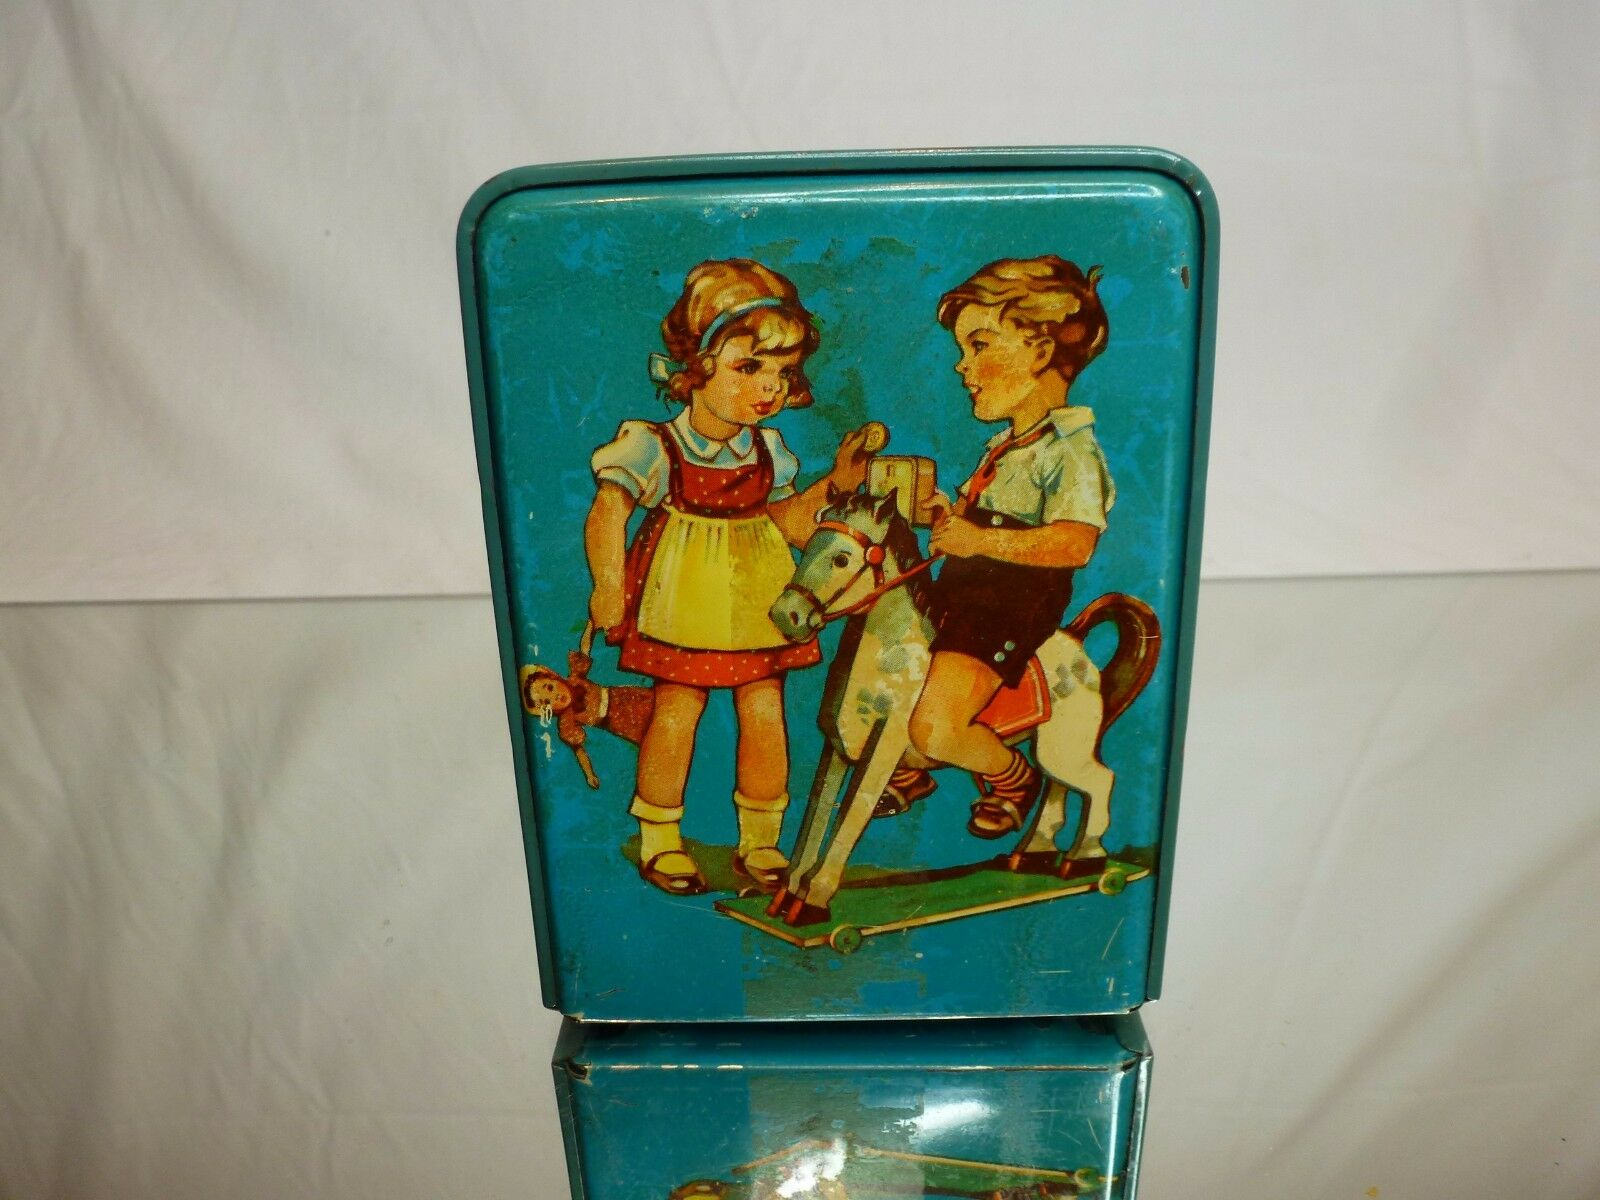 VINTAGE TIN TOY  GEOBRA  GERMANY MONEY BOX -  H11.0cm RARE - GOOD CONDITION